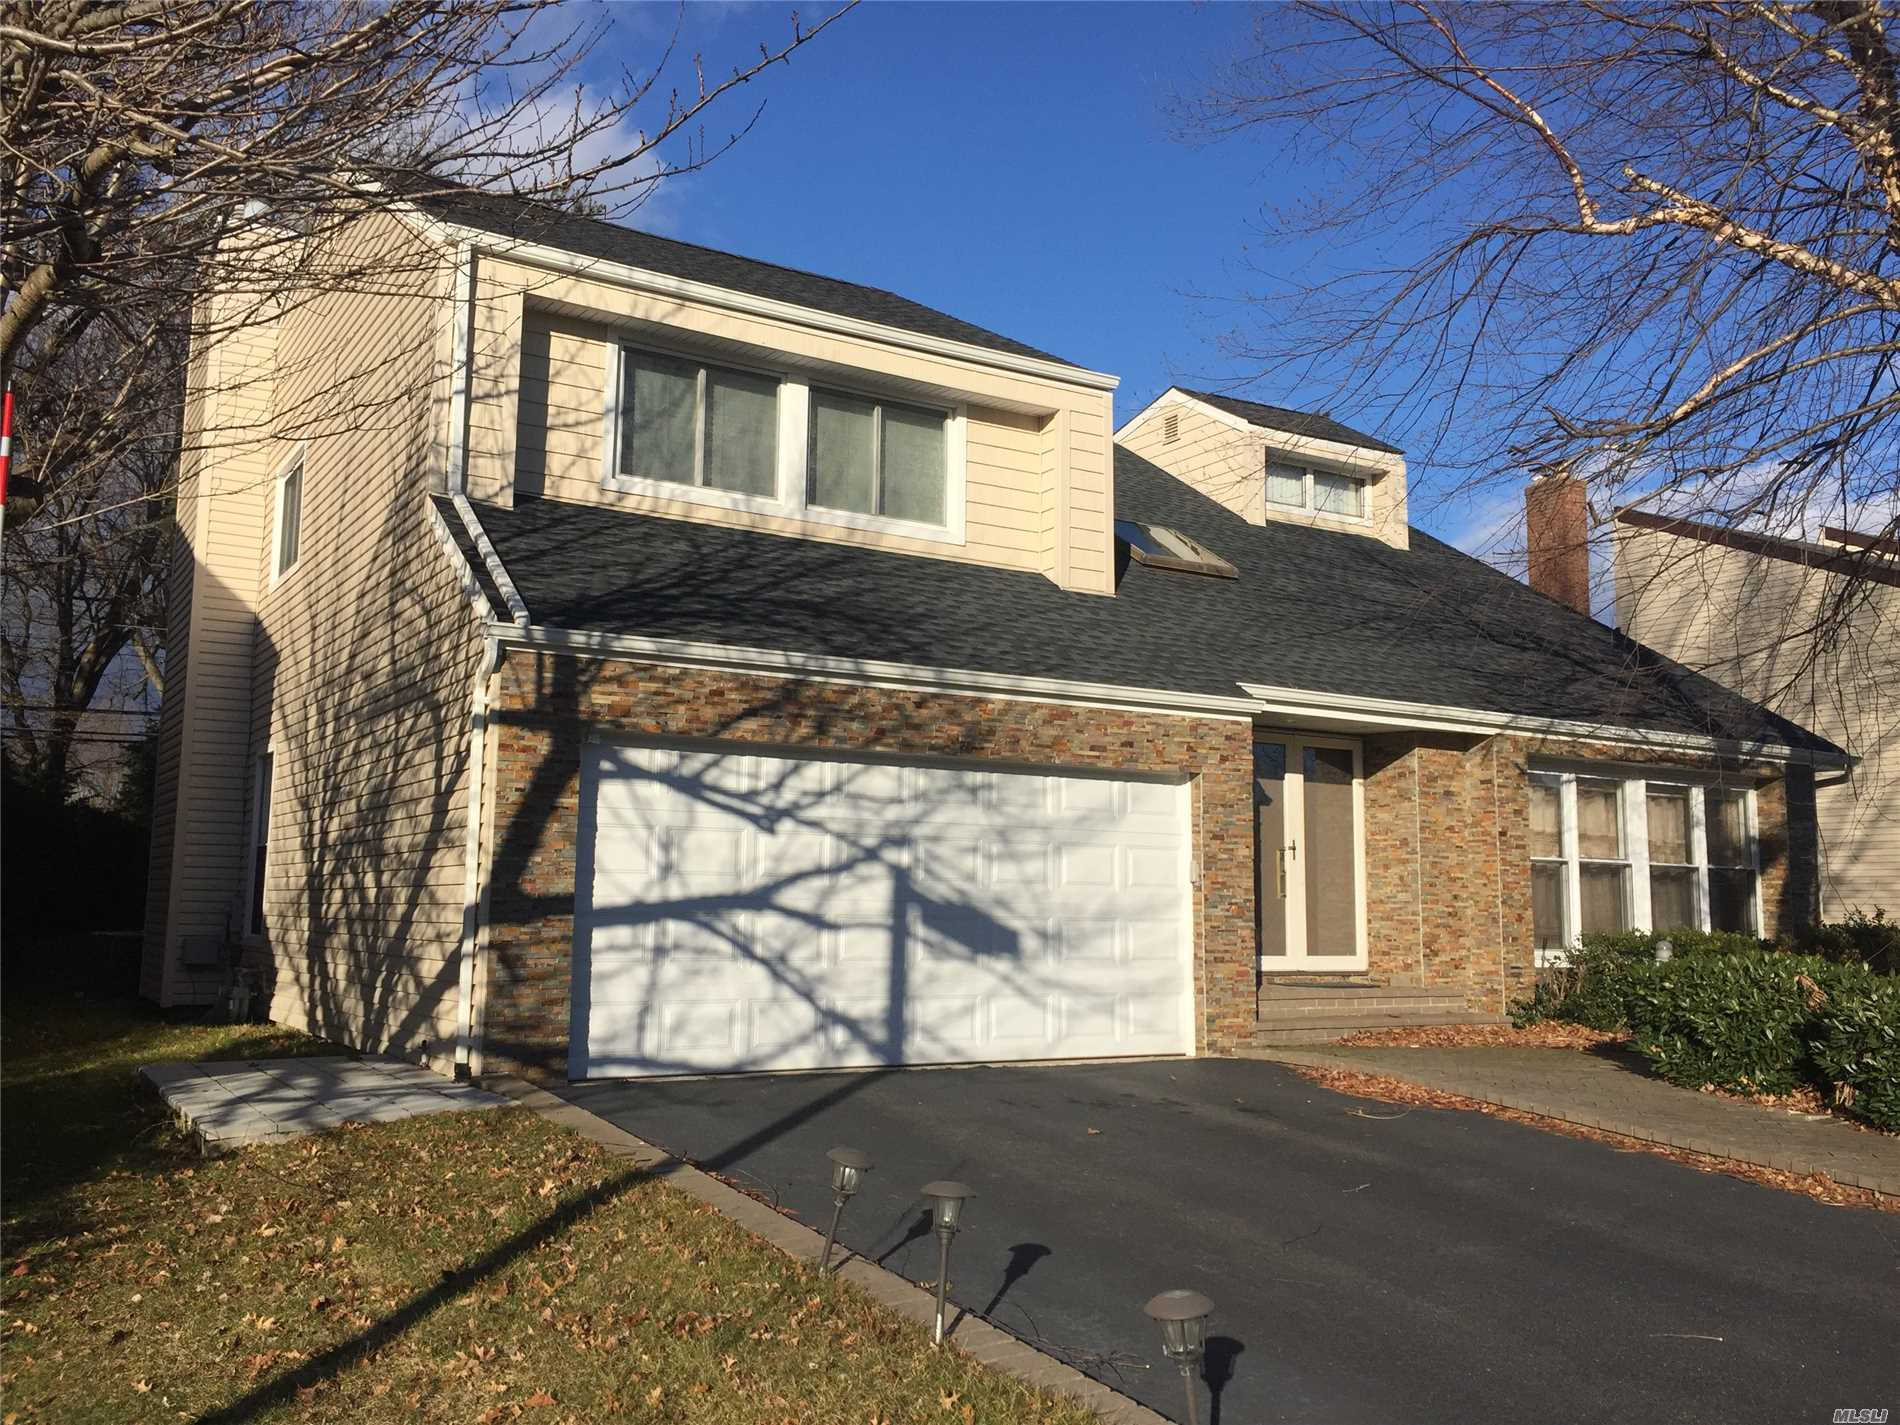 Located In The Desirable Campus Estates Section Of Syosset, Country Club Living W/ Community Pool & Tennis, Updated & Renovated Beautiful Colonial On Oversized Lot, Spacious Rooms, Soaring Ceiling, Formal Living Room& Dining Room, Family Room W/Fireplace Opens To Large Eik, A Large Yard With Rear Deck. New Windows & Roof & Siding Installed In 2017. Alarm System W/Cameras. Garage Equipped W/Charging Outlet For Electric Car. Syosset Sd, Robbins Lane Elementary School & H B Thompson Middle School.